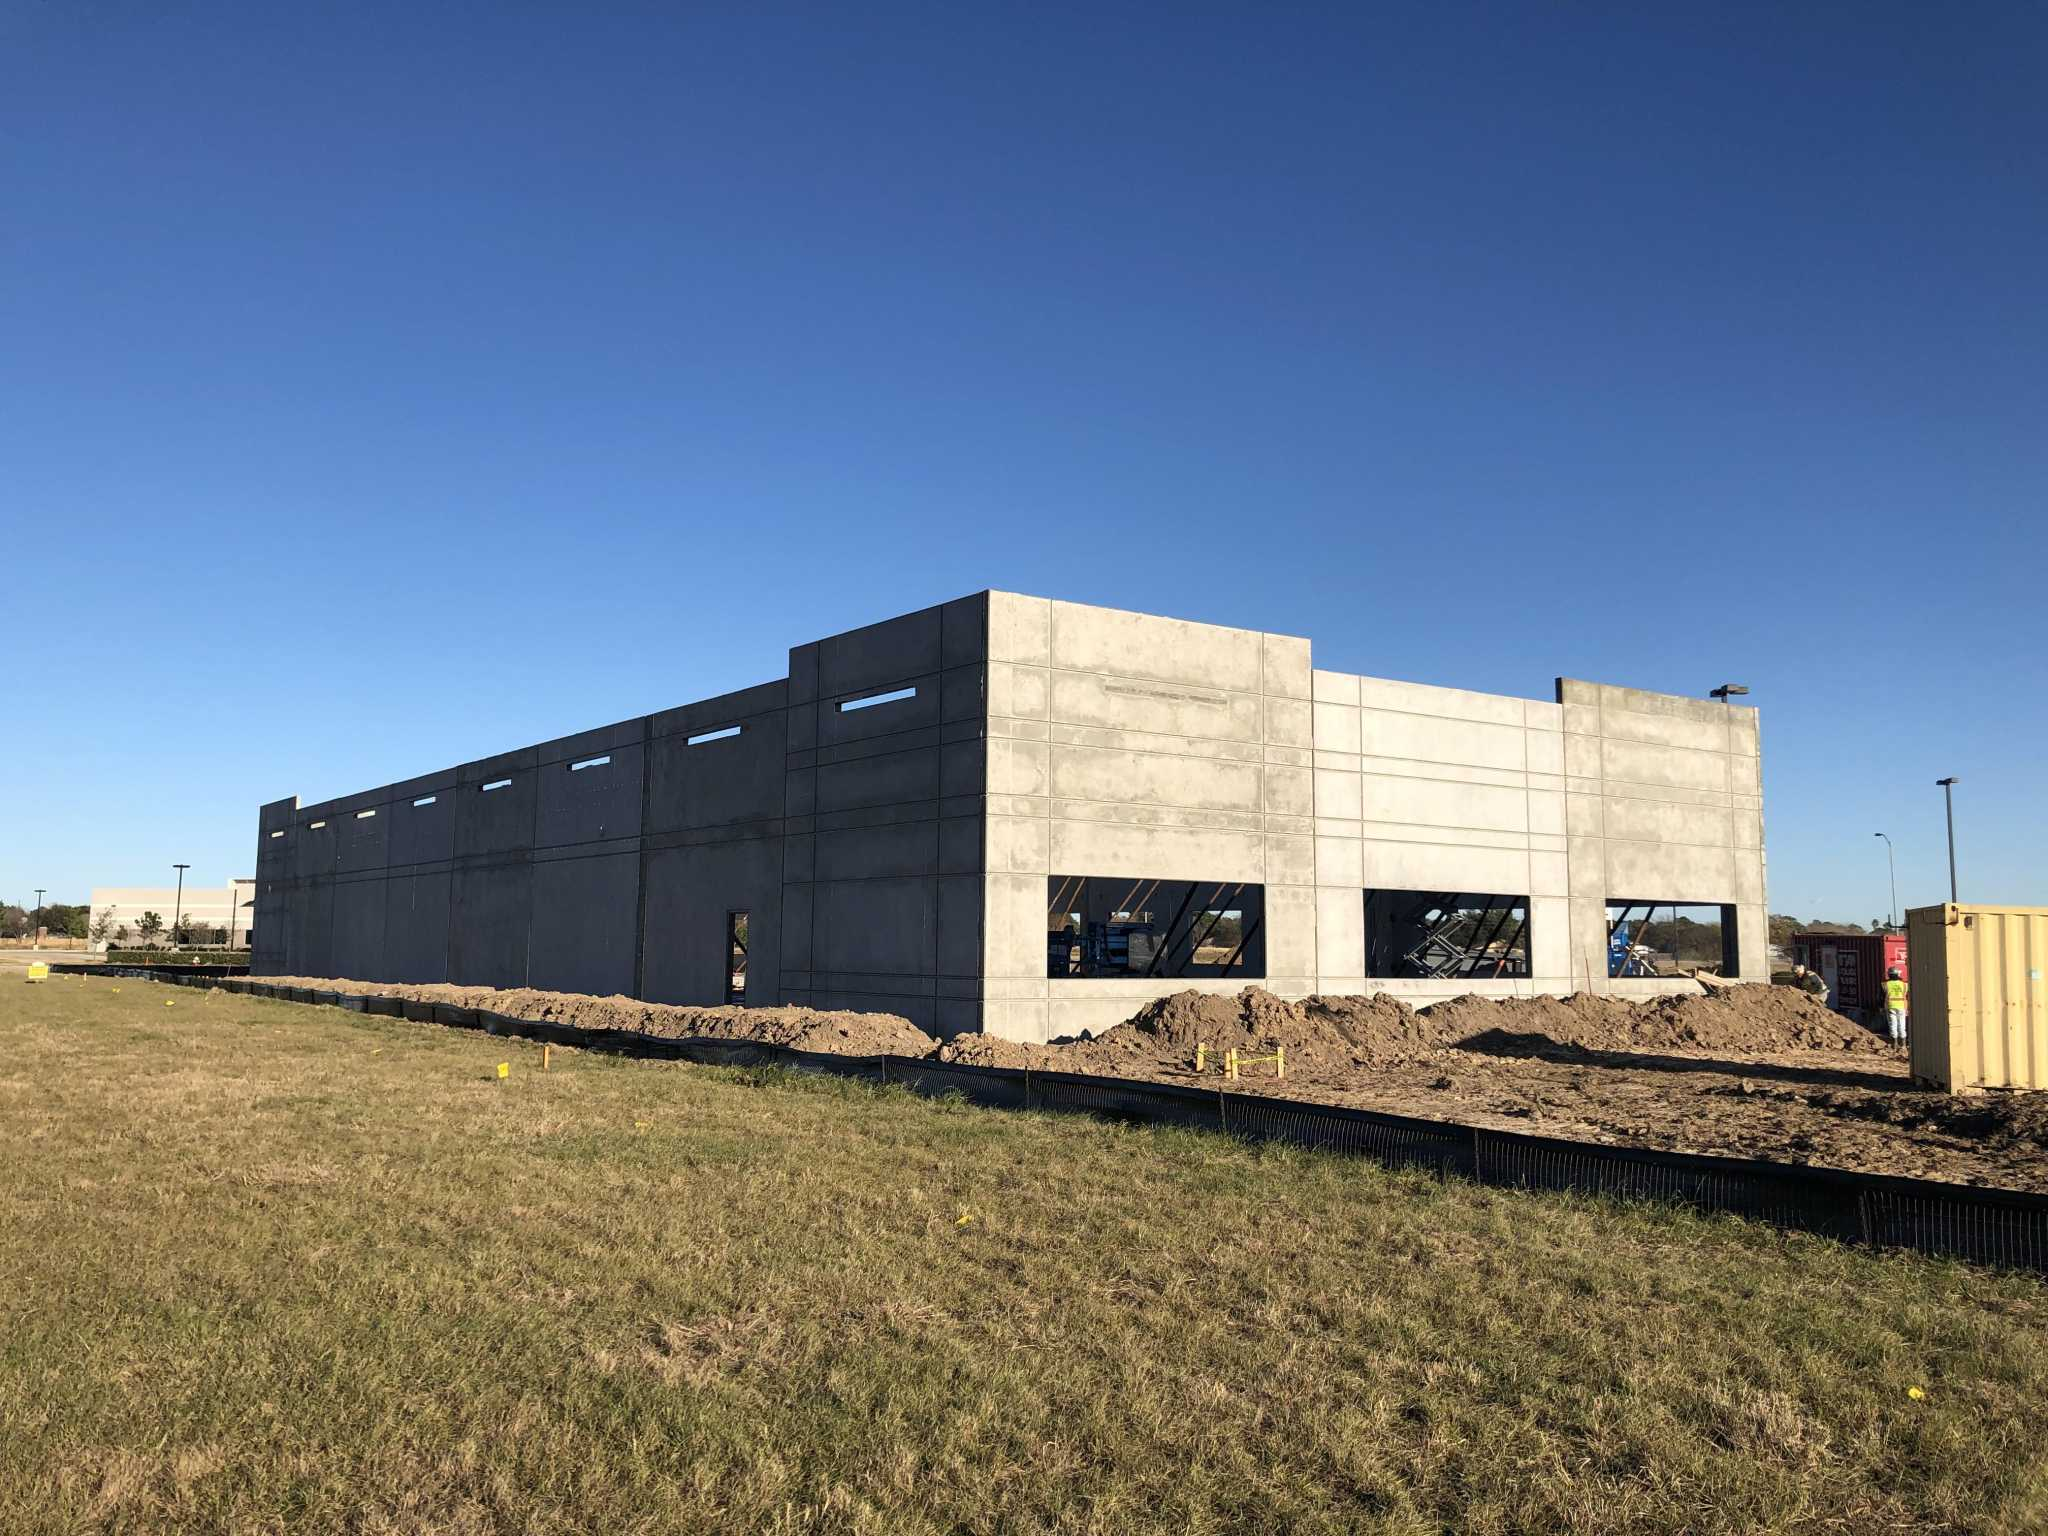 Real Estate Transactions New Buildings Going Up In Katy And Tomball Areas